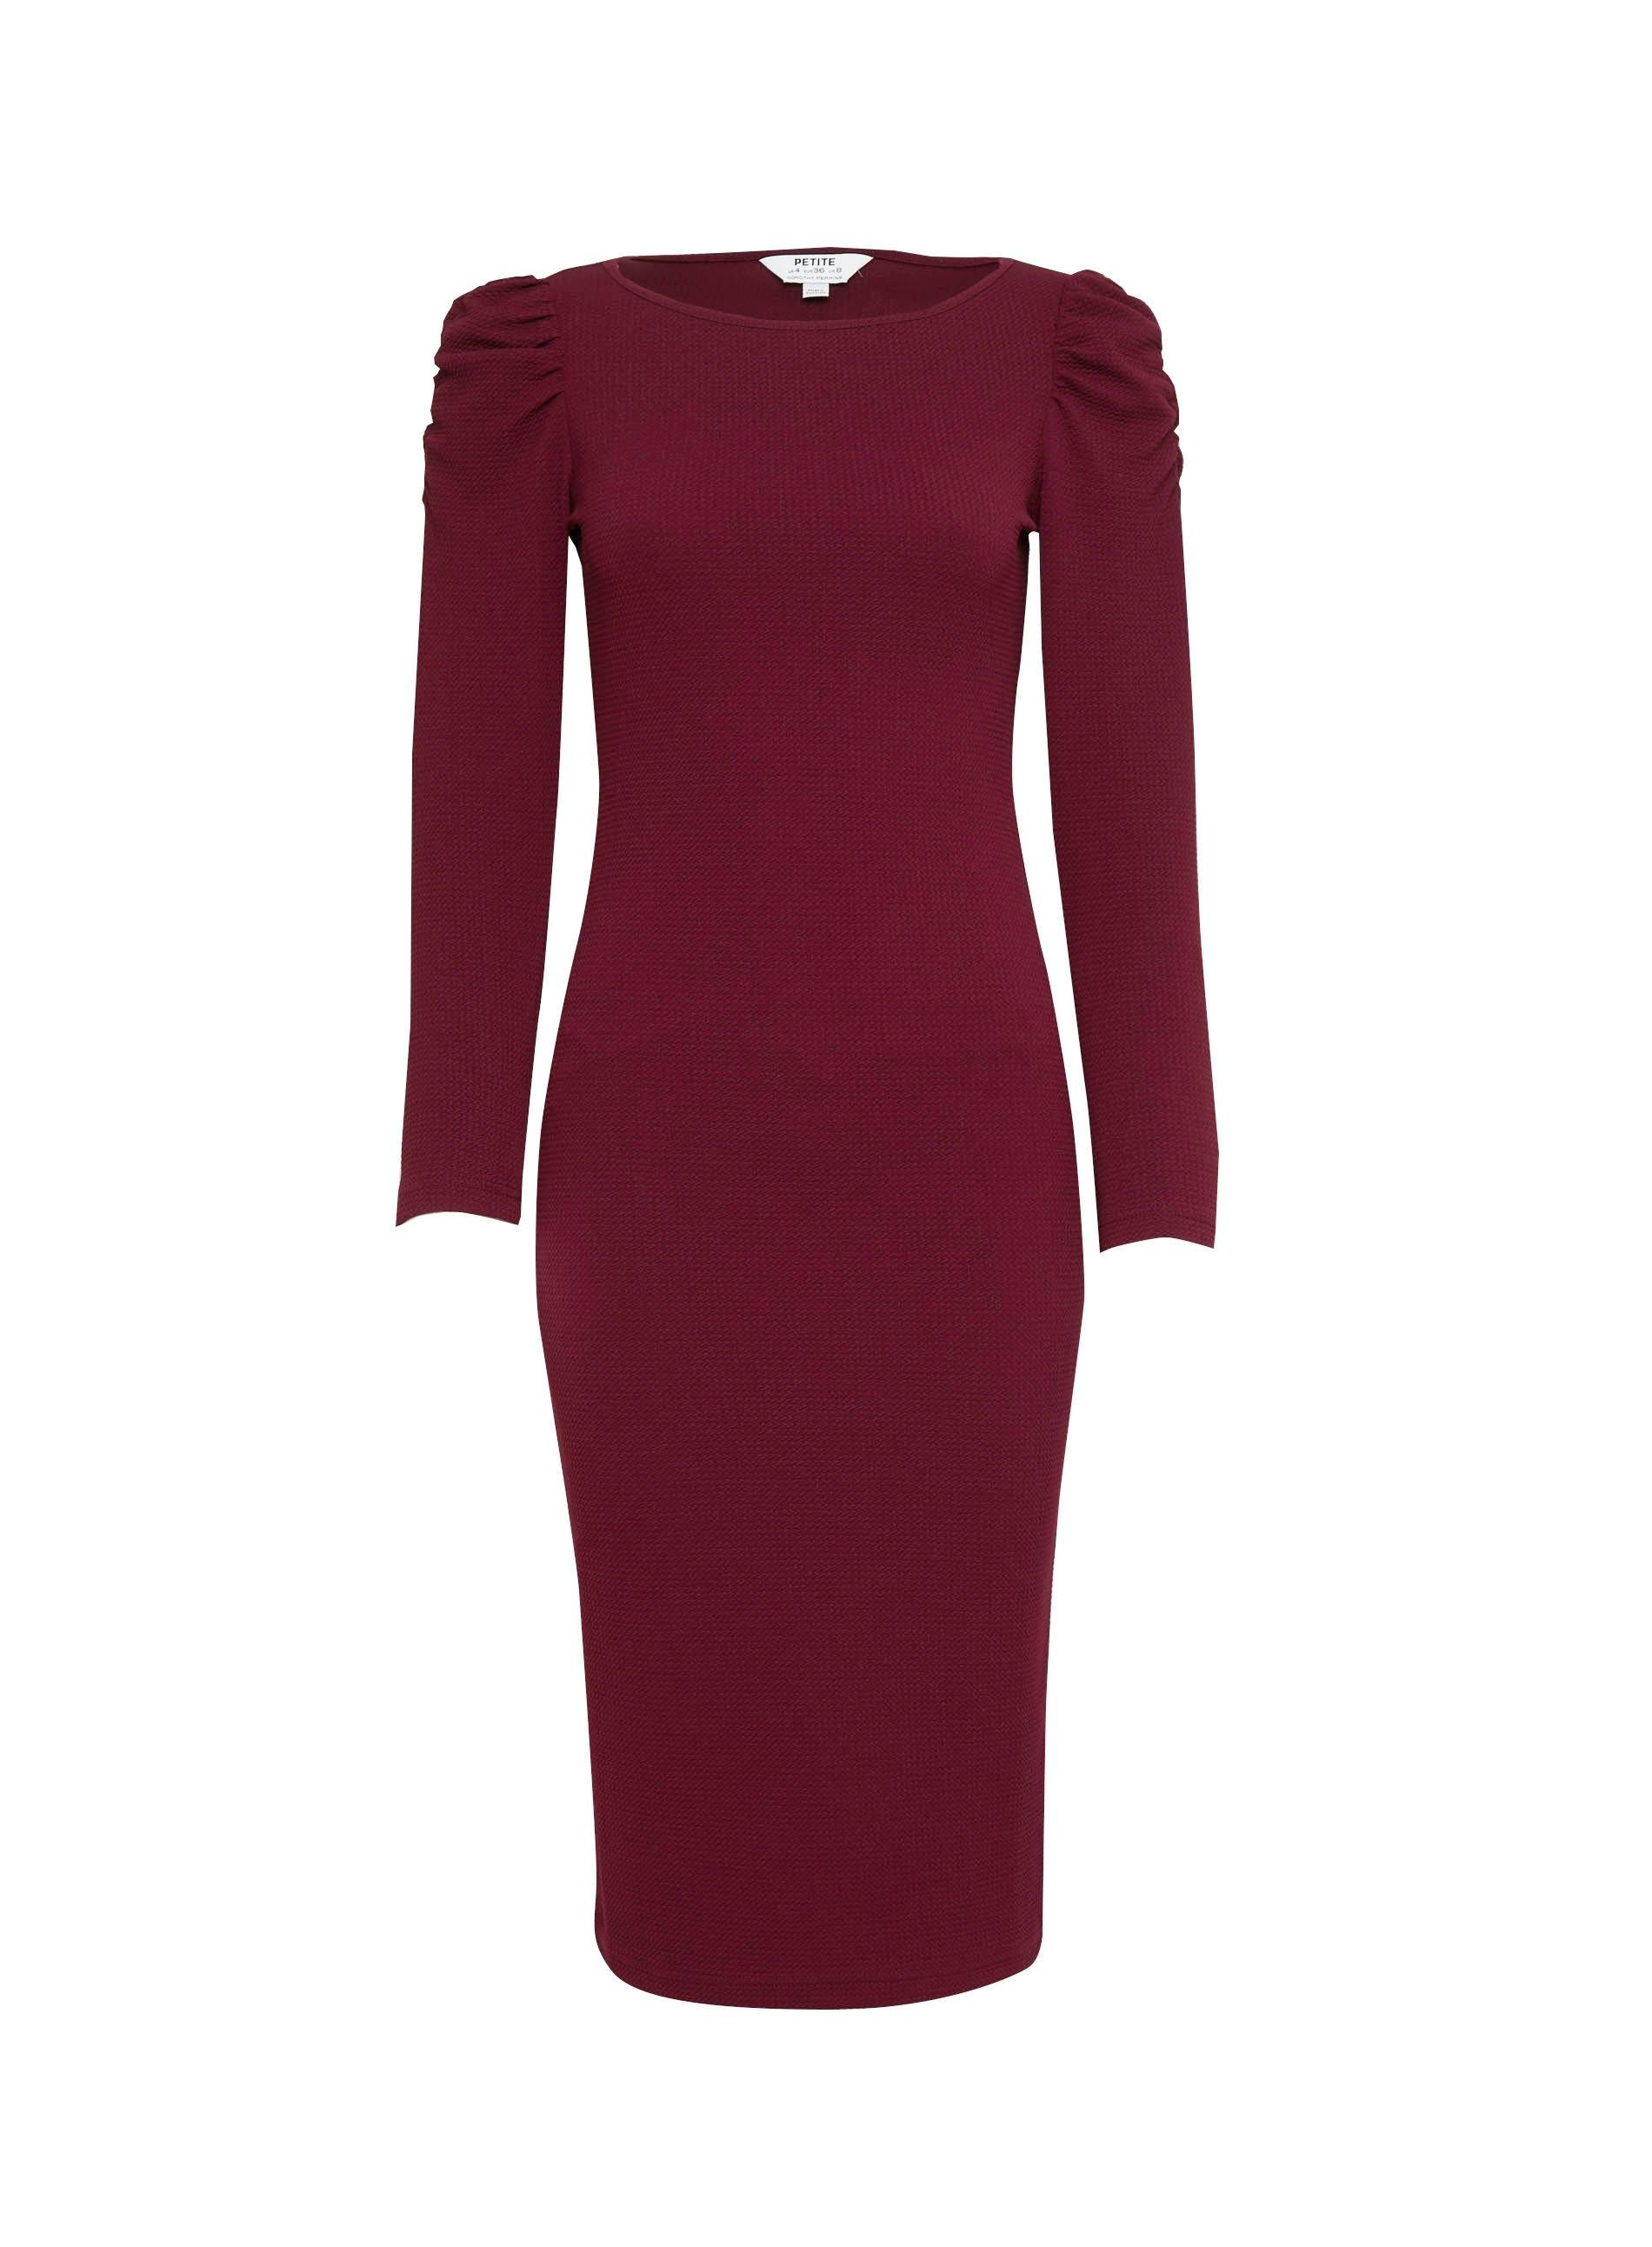 Dorothy Perkins Womens Petite Purple Ruched Sleeve Bodycon Dress Long Sleeve